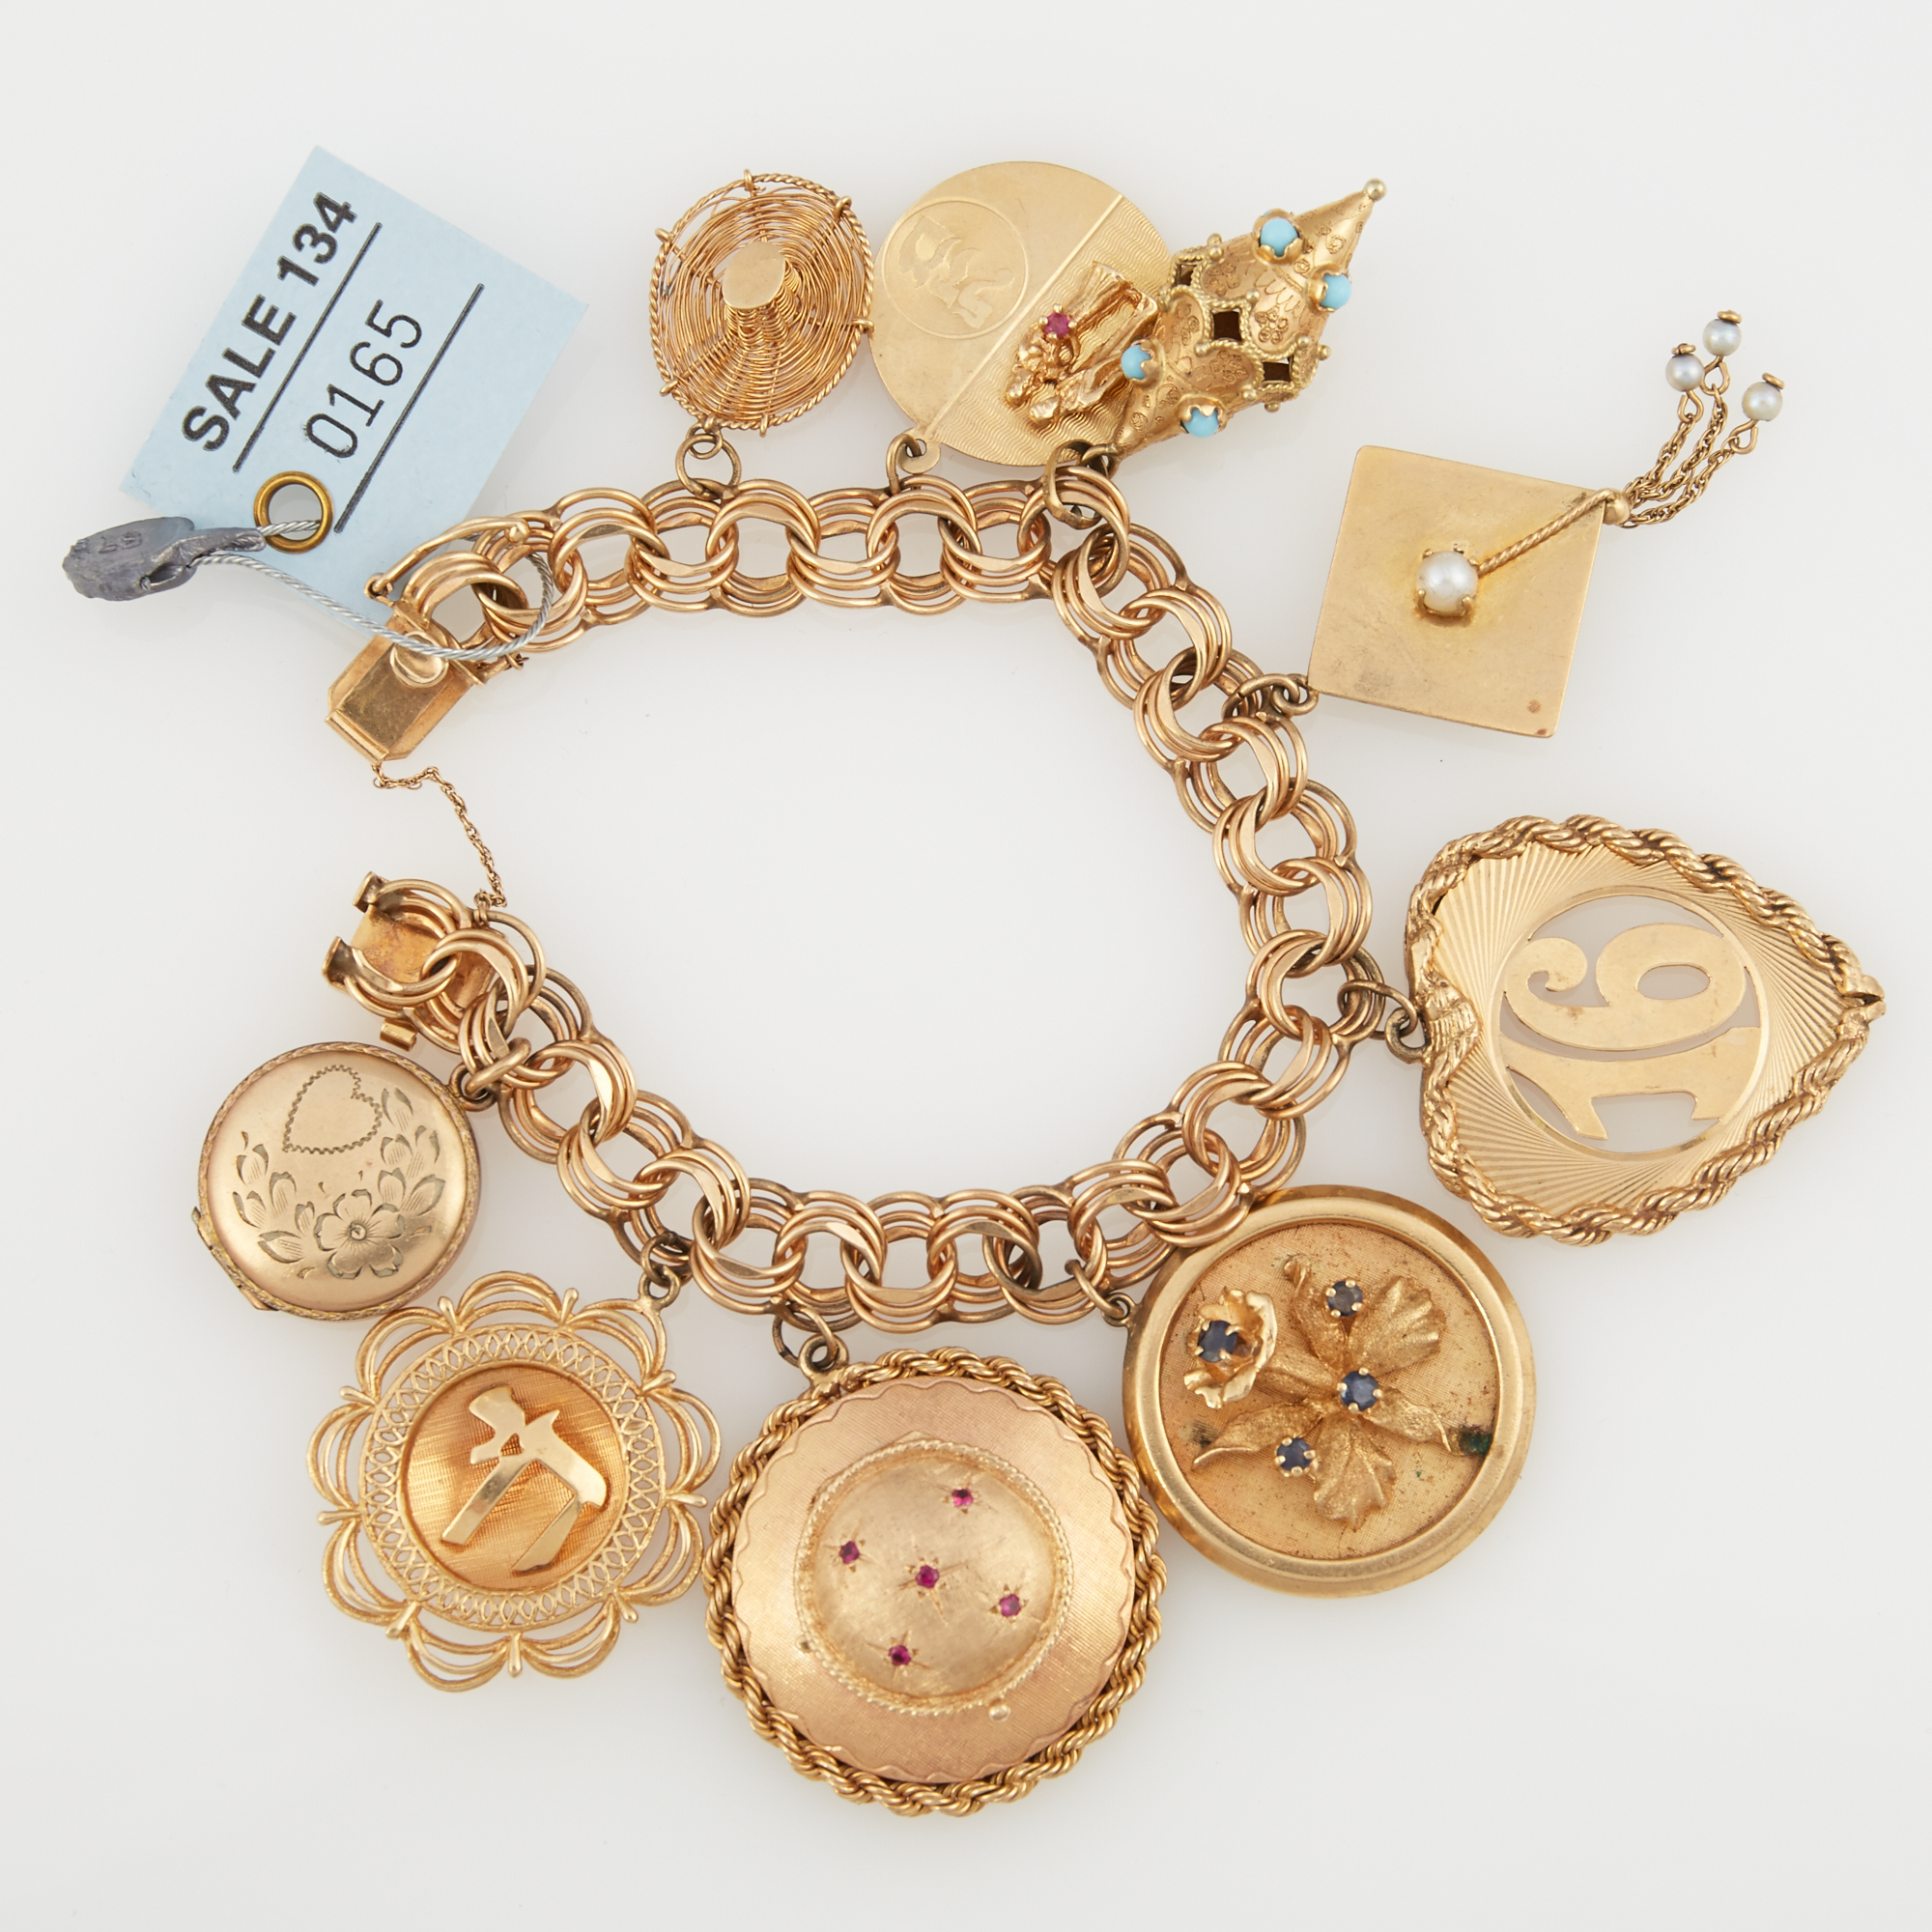 Lot image - Gold Charm Bracelet with 9 gold, stone, bead and metal charms attached, 14K and Metal 55 dwt. all